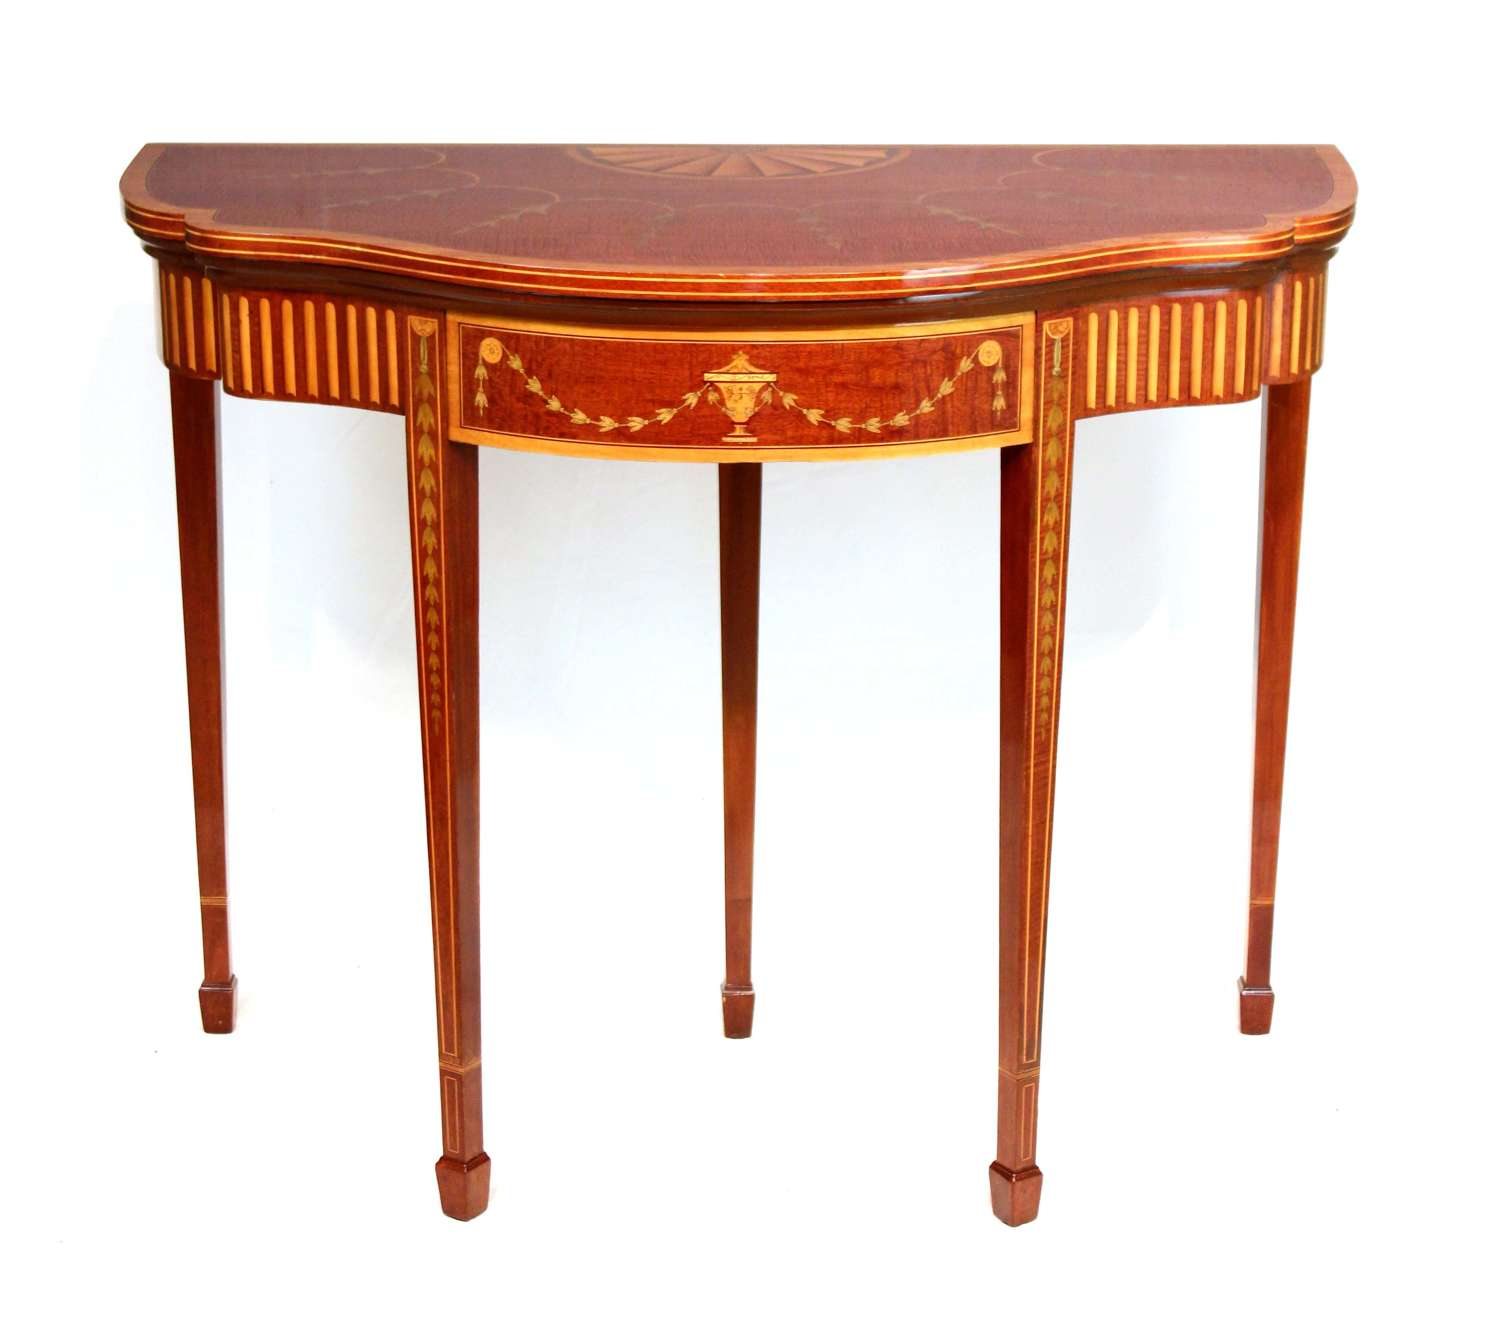 A Quality Late Victorian Mahogany Inlaid Serpentine Card Table